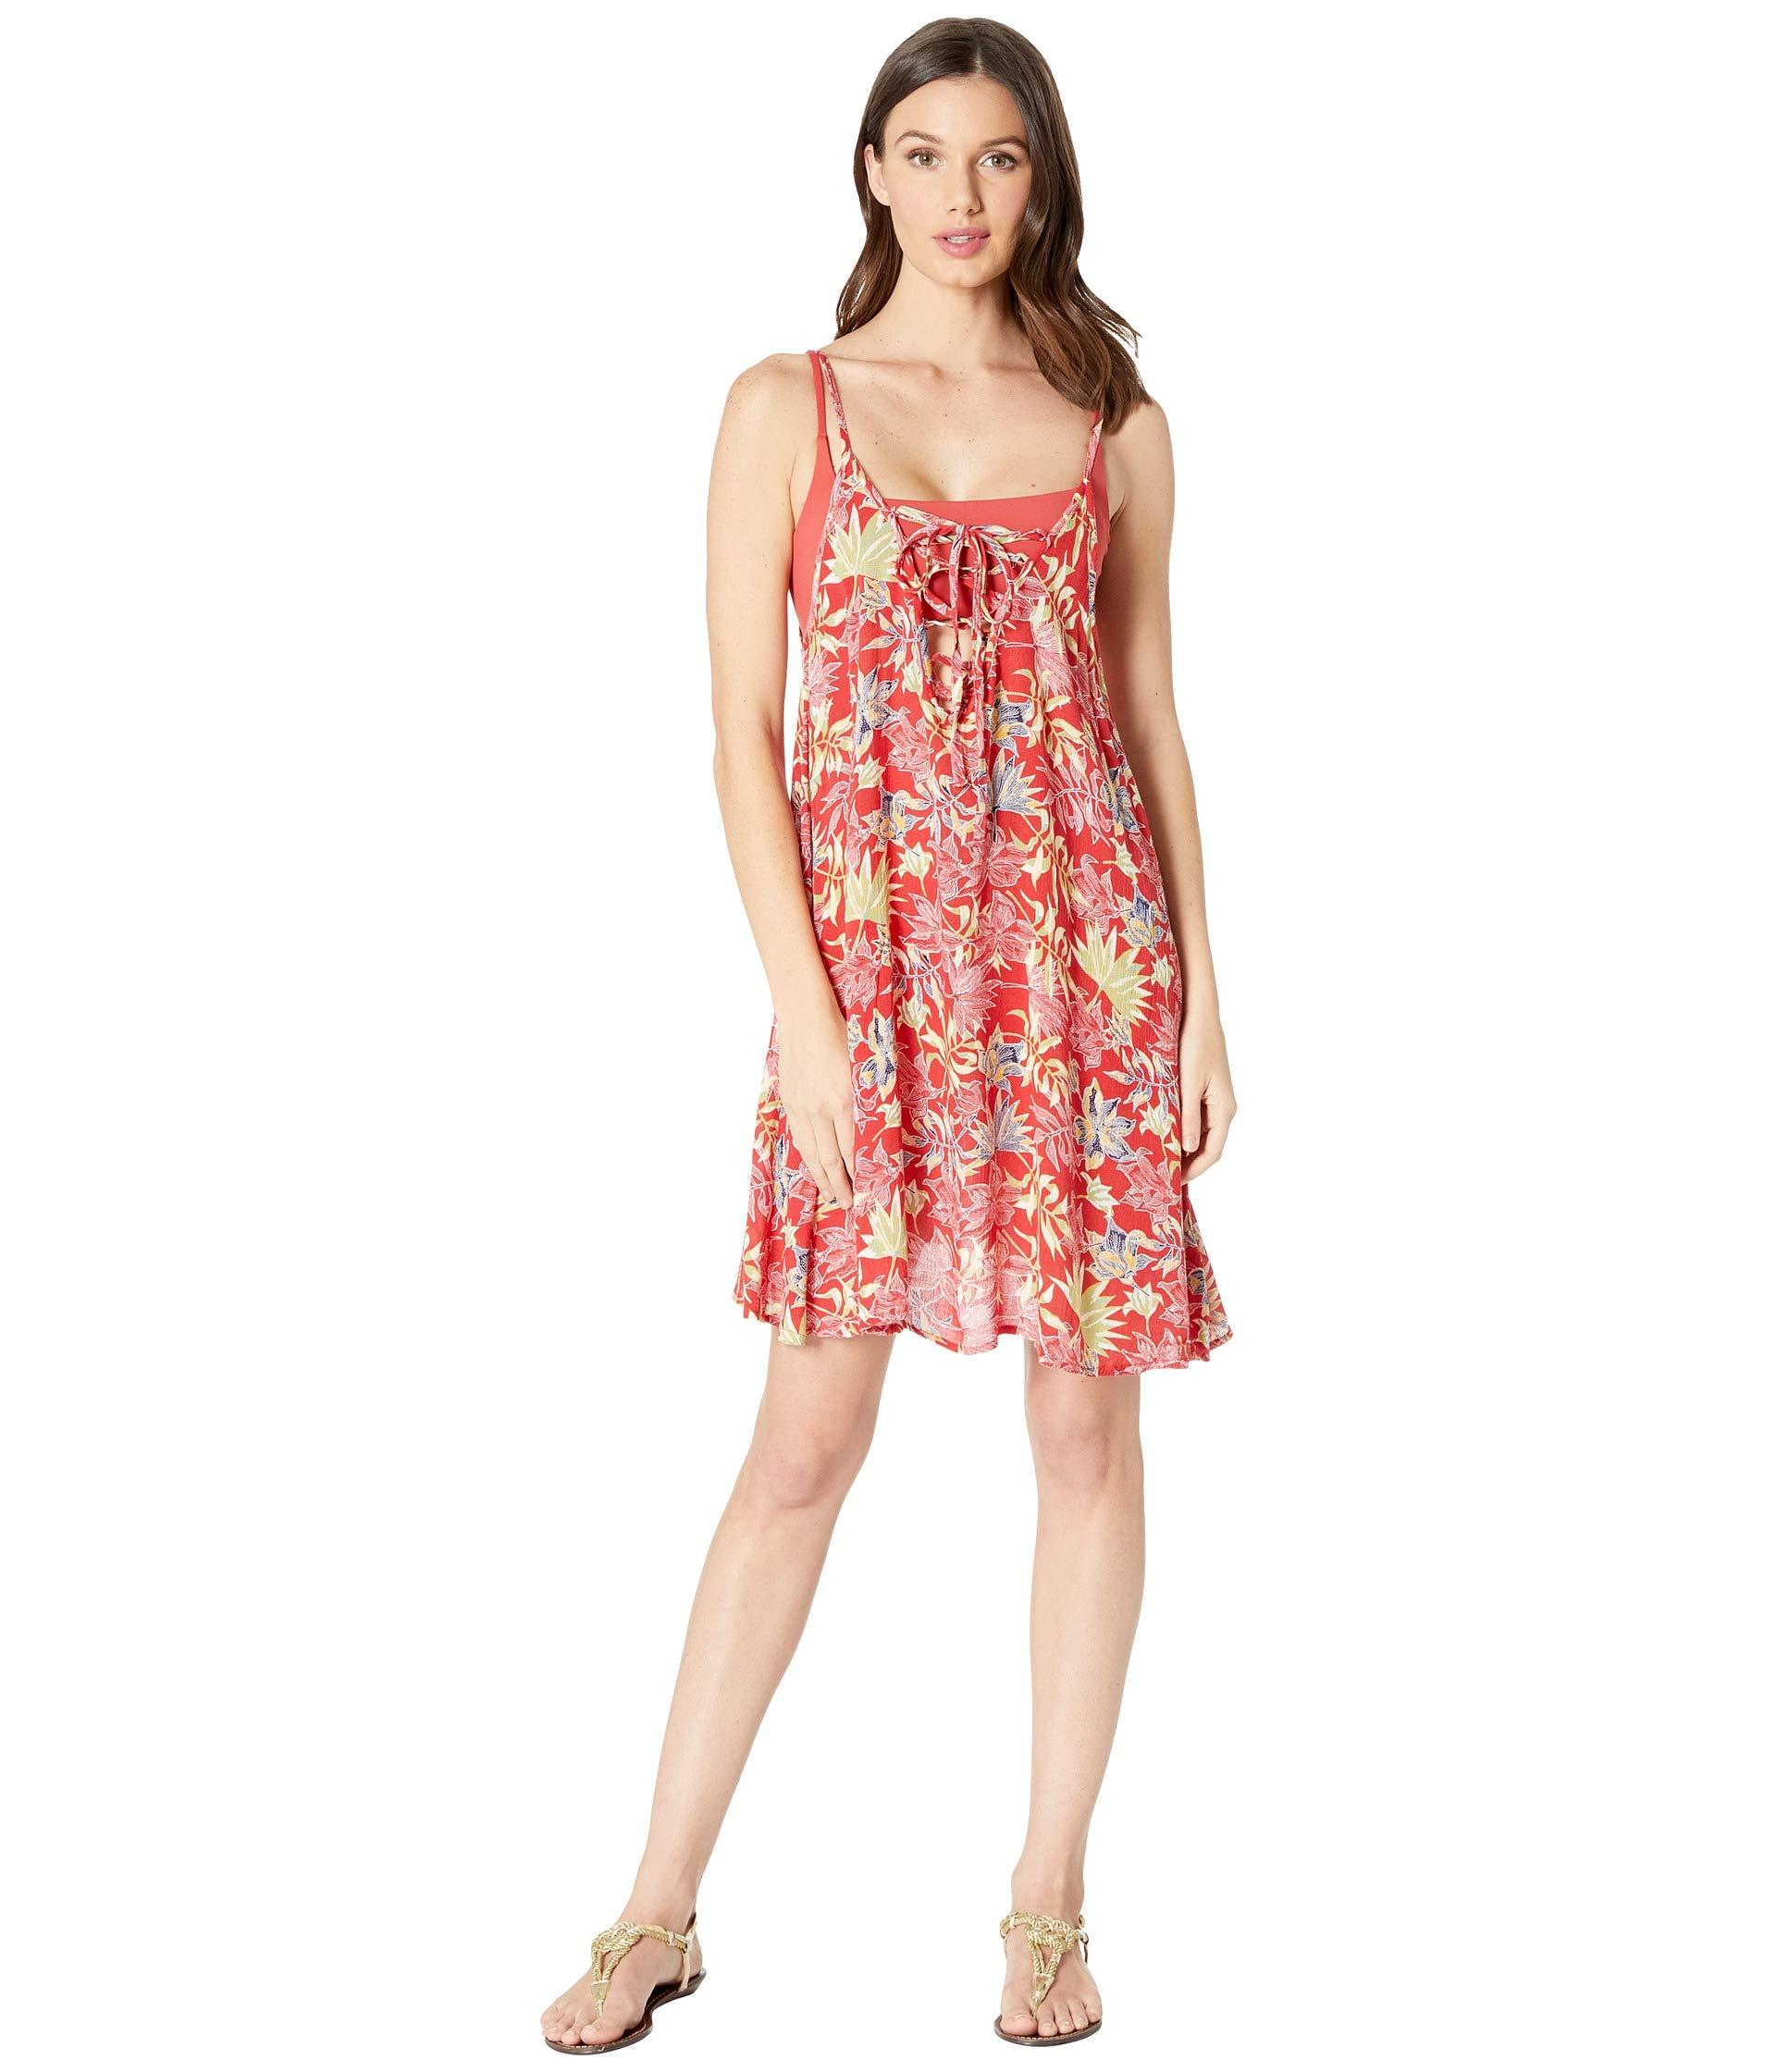 eced912c71 Roxy Printed Softly Love Cover-up Swimsuit Dress in Red - Lyst